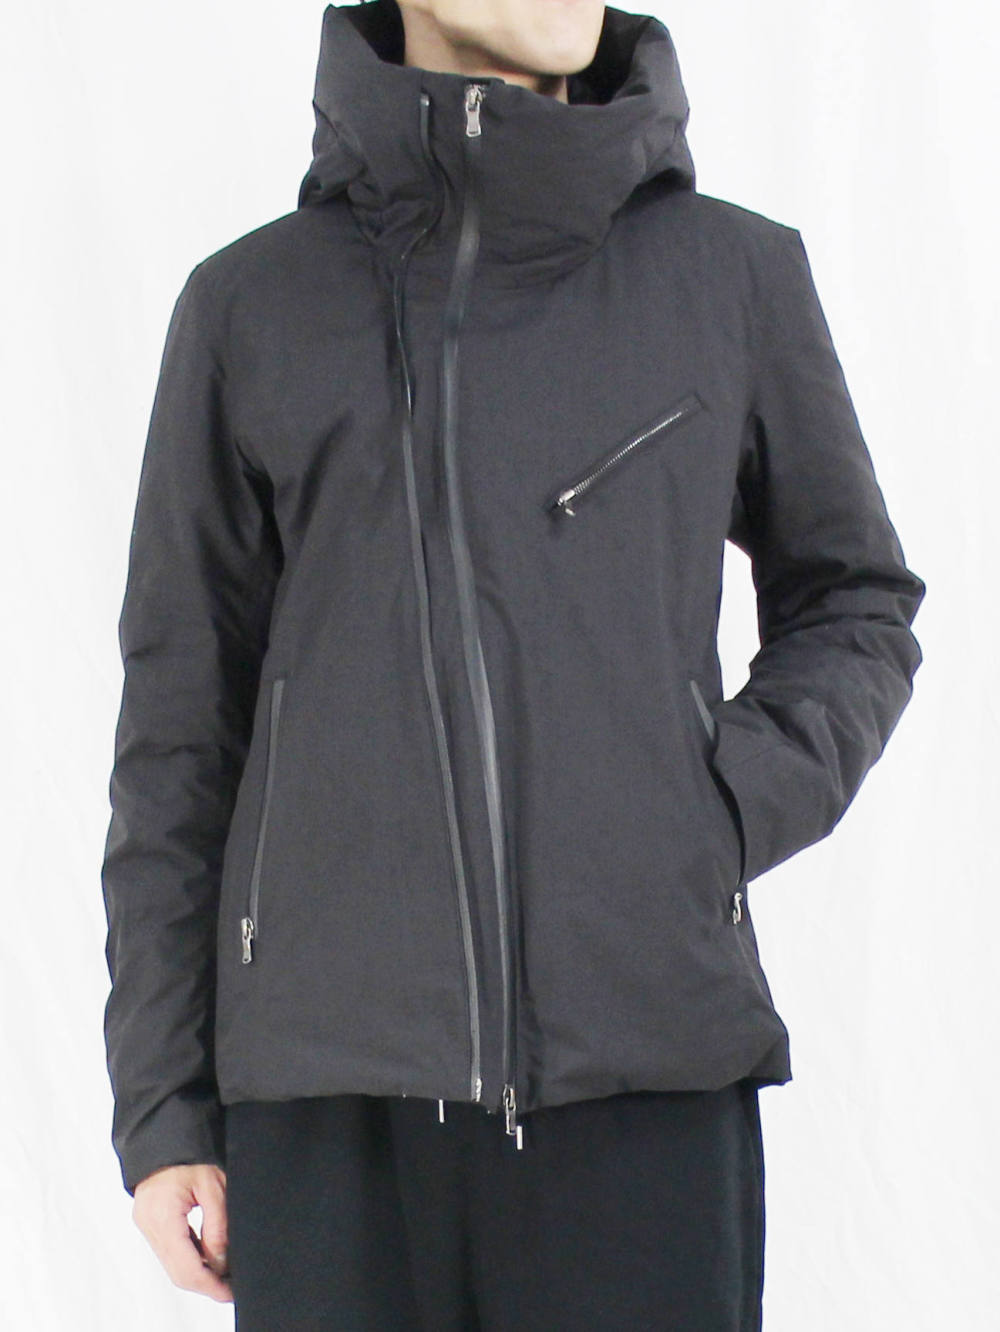 The Viridi-anne 17-18AW - High Nack Down Jacket